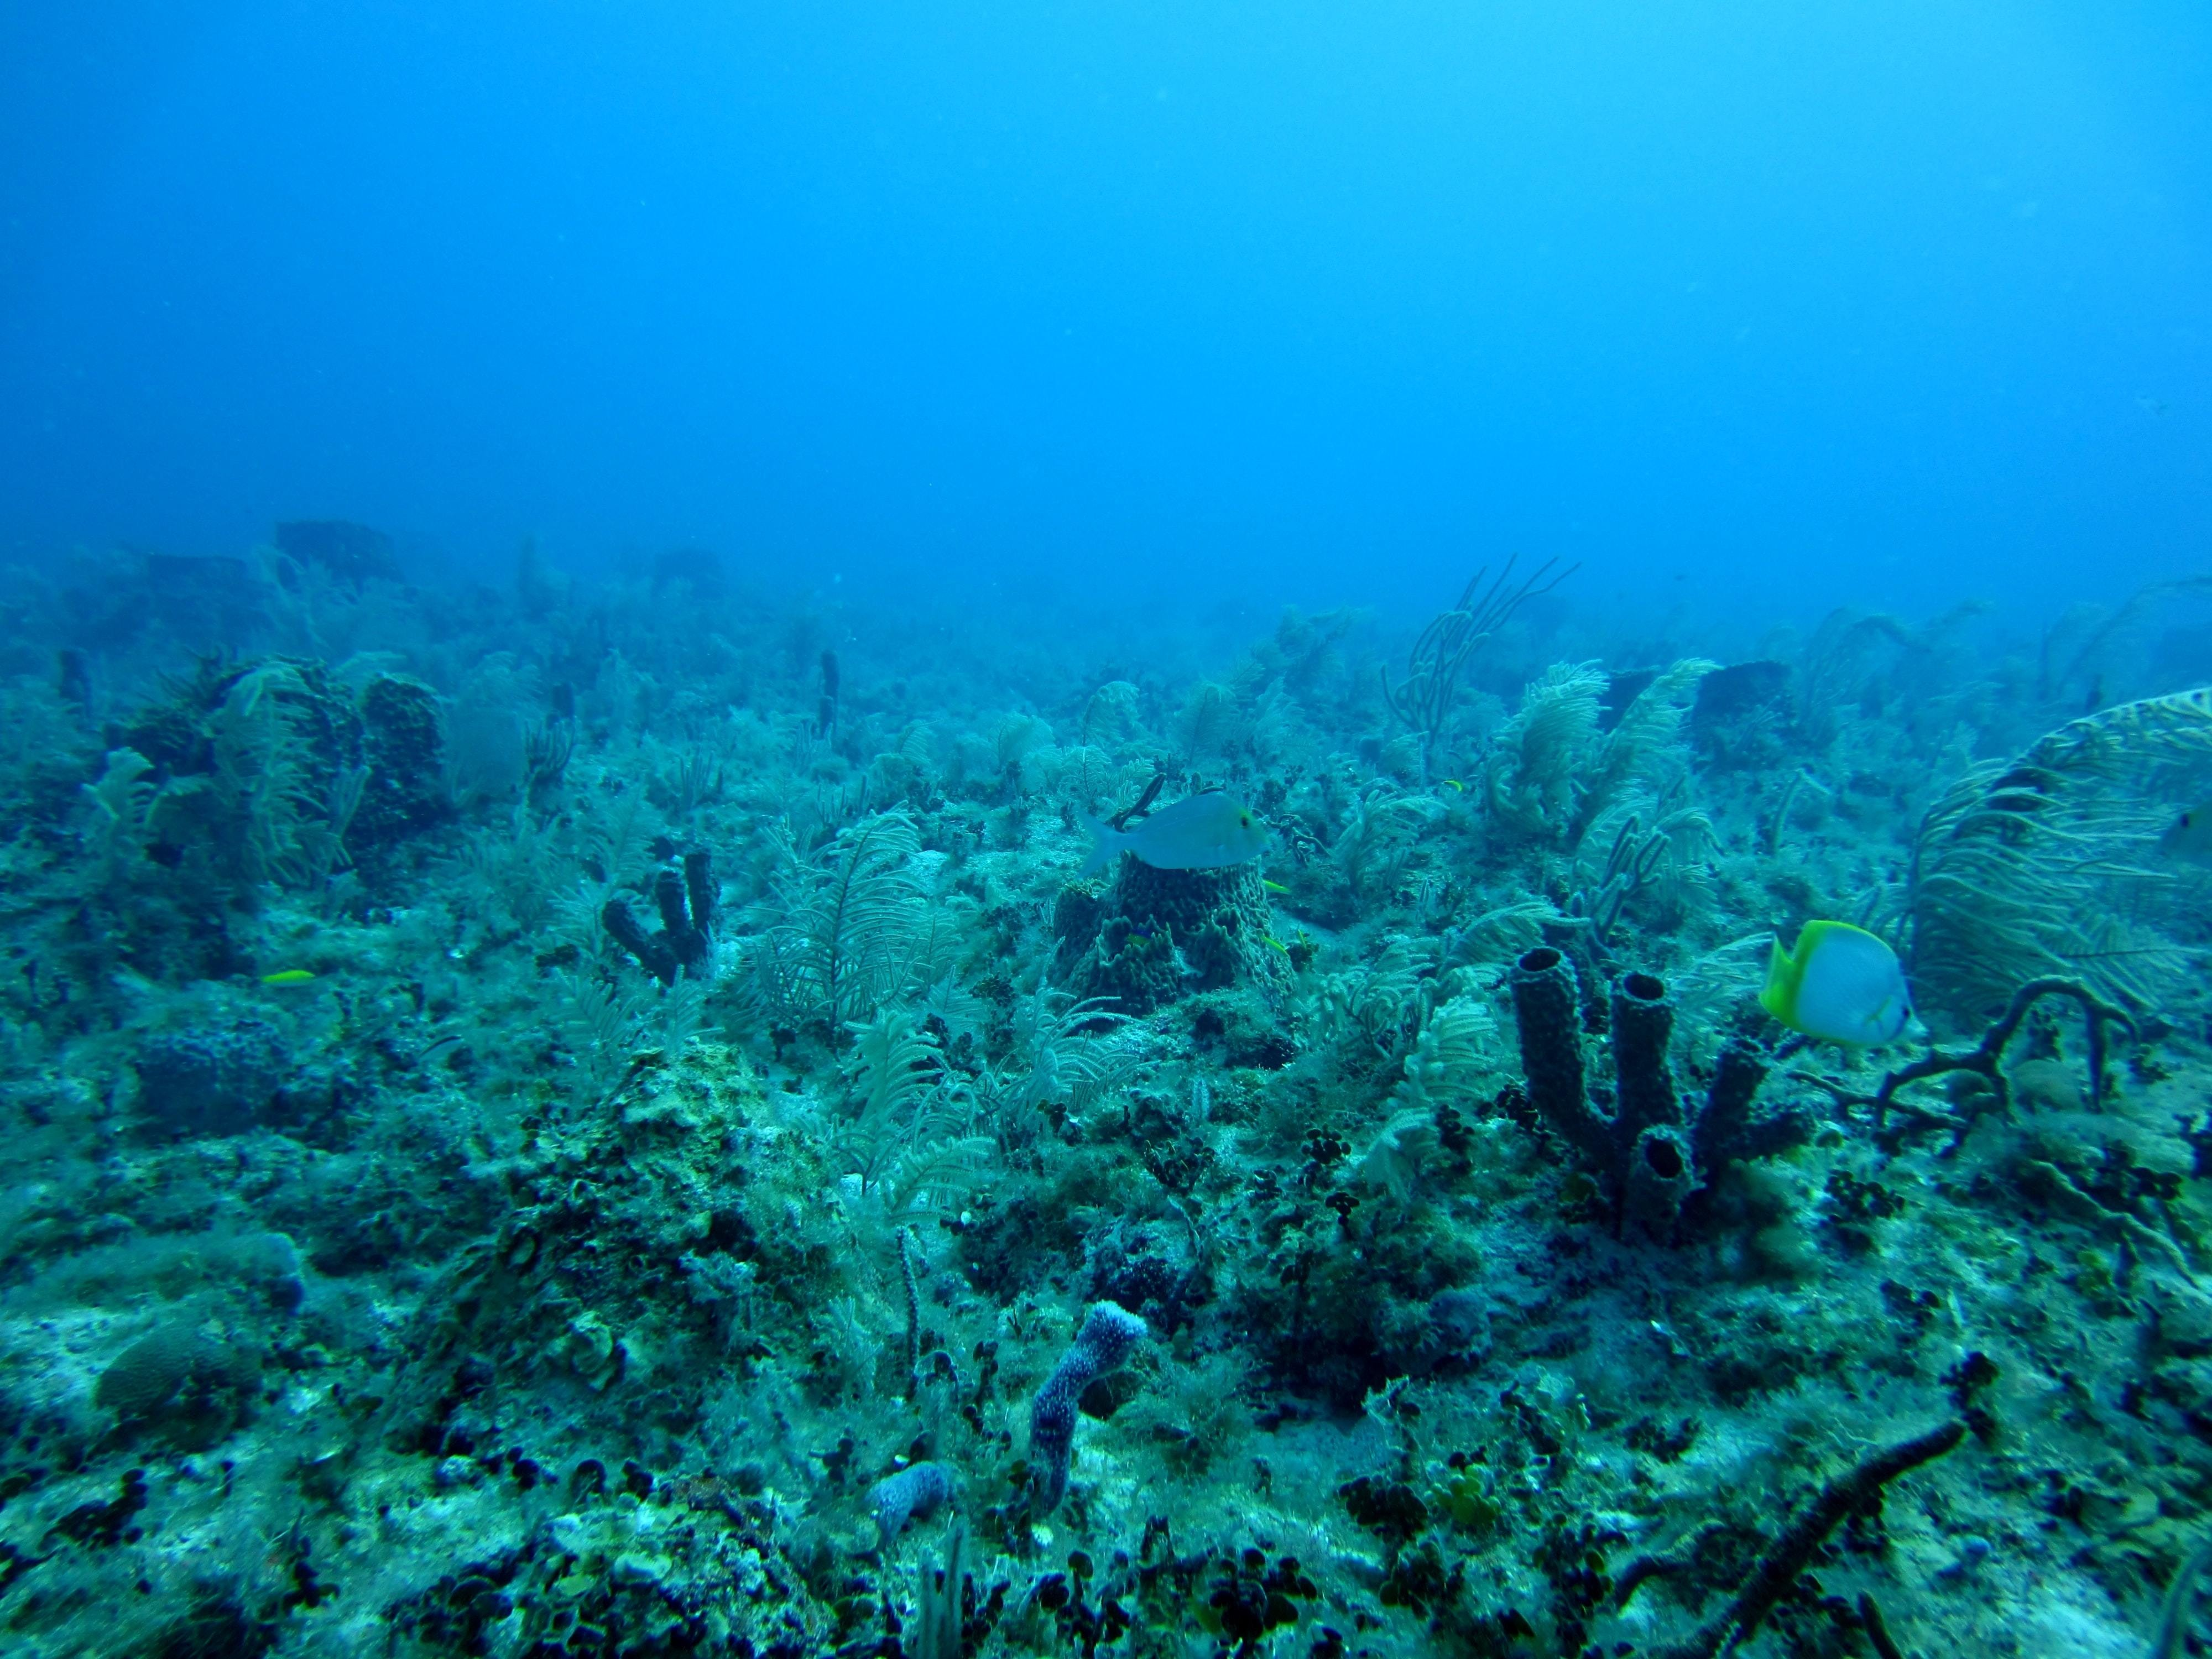 Algae, shown here alongside fish on the seafloor, helps transport carbon to the depths of the ocean.